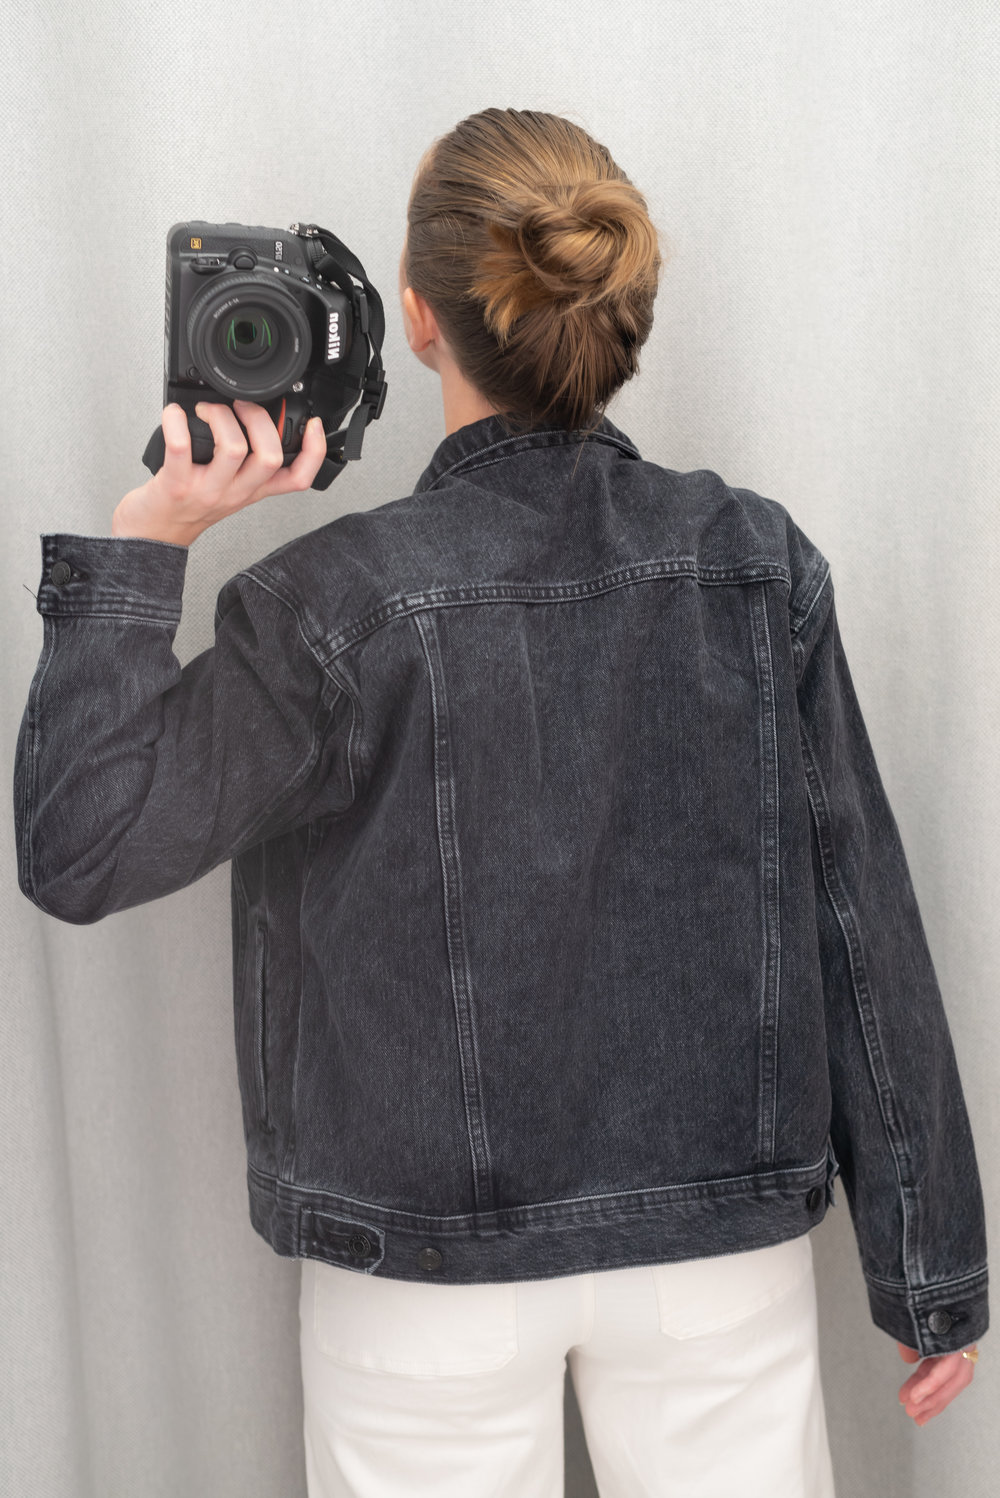 Everlane The Denim Jacket - Size S - Back View